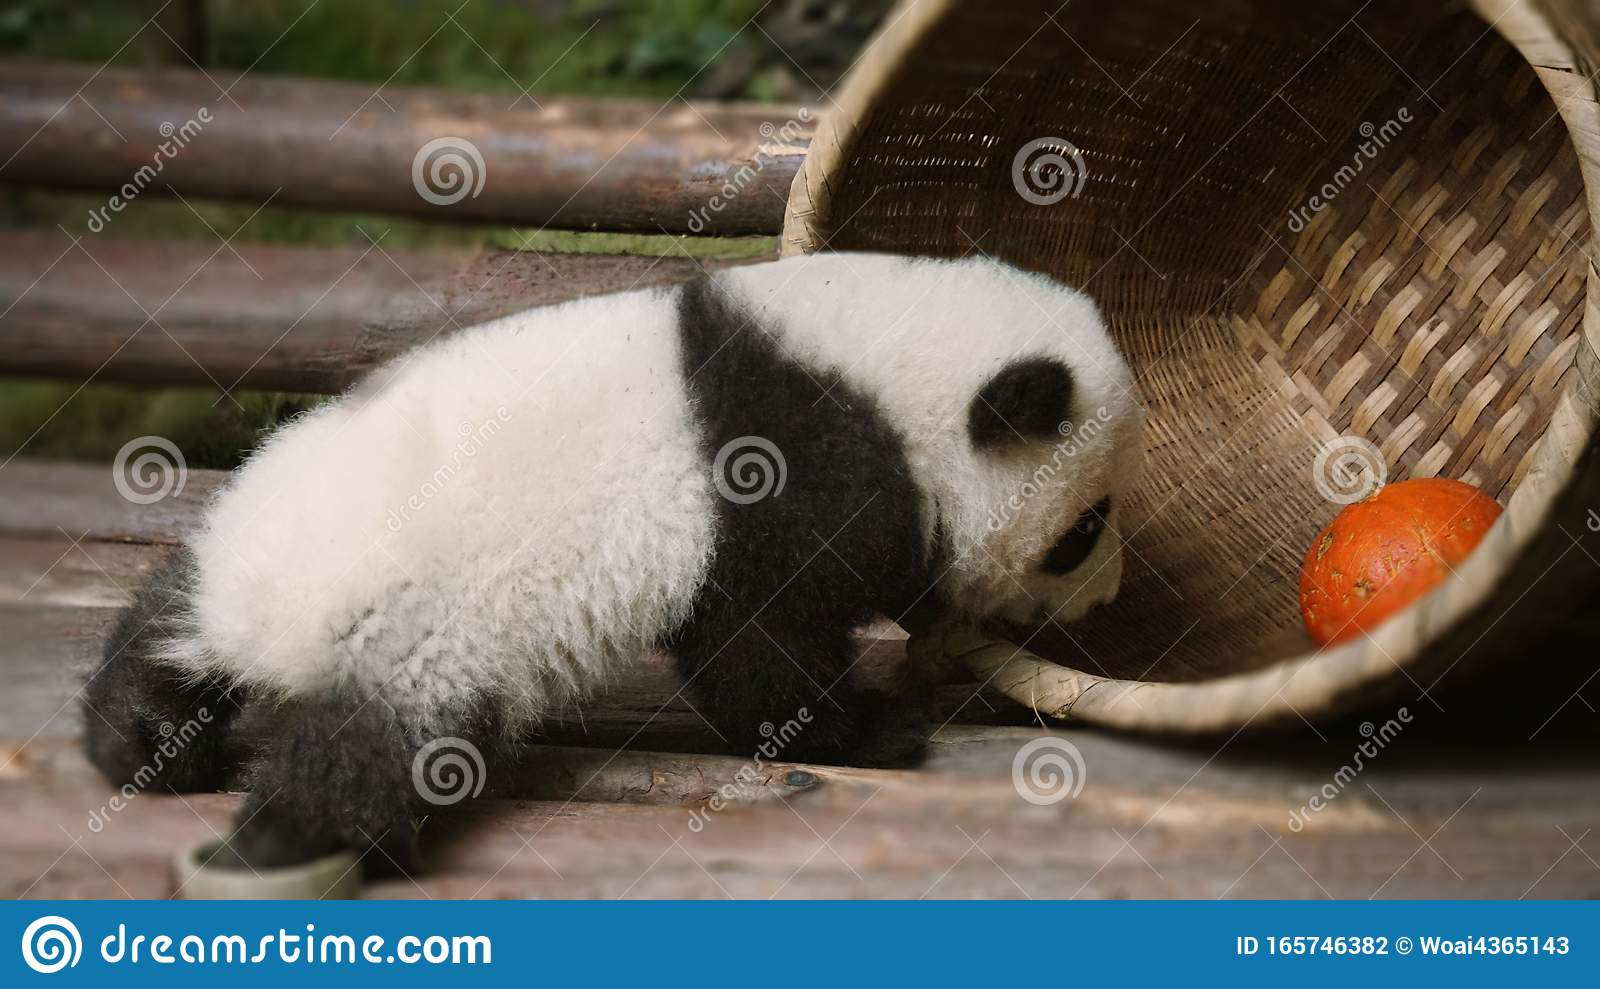 2 480 Baby Panda Photos Free Royalty Free Stock Photos From Dreamstime